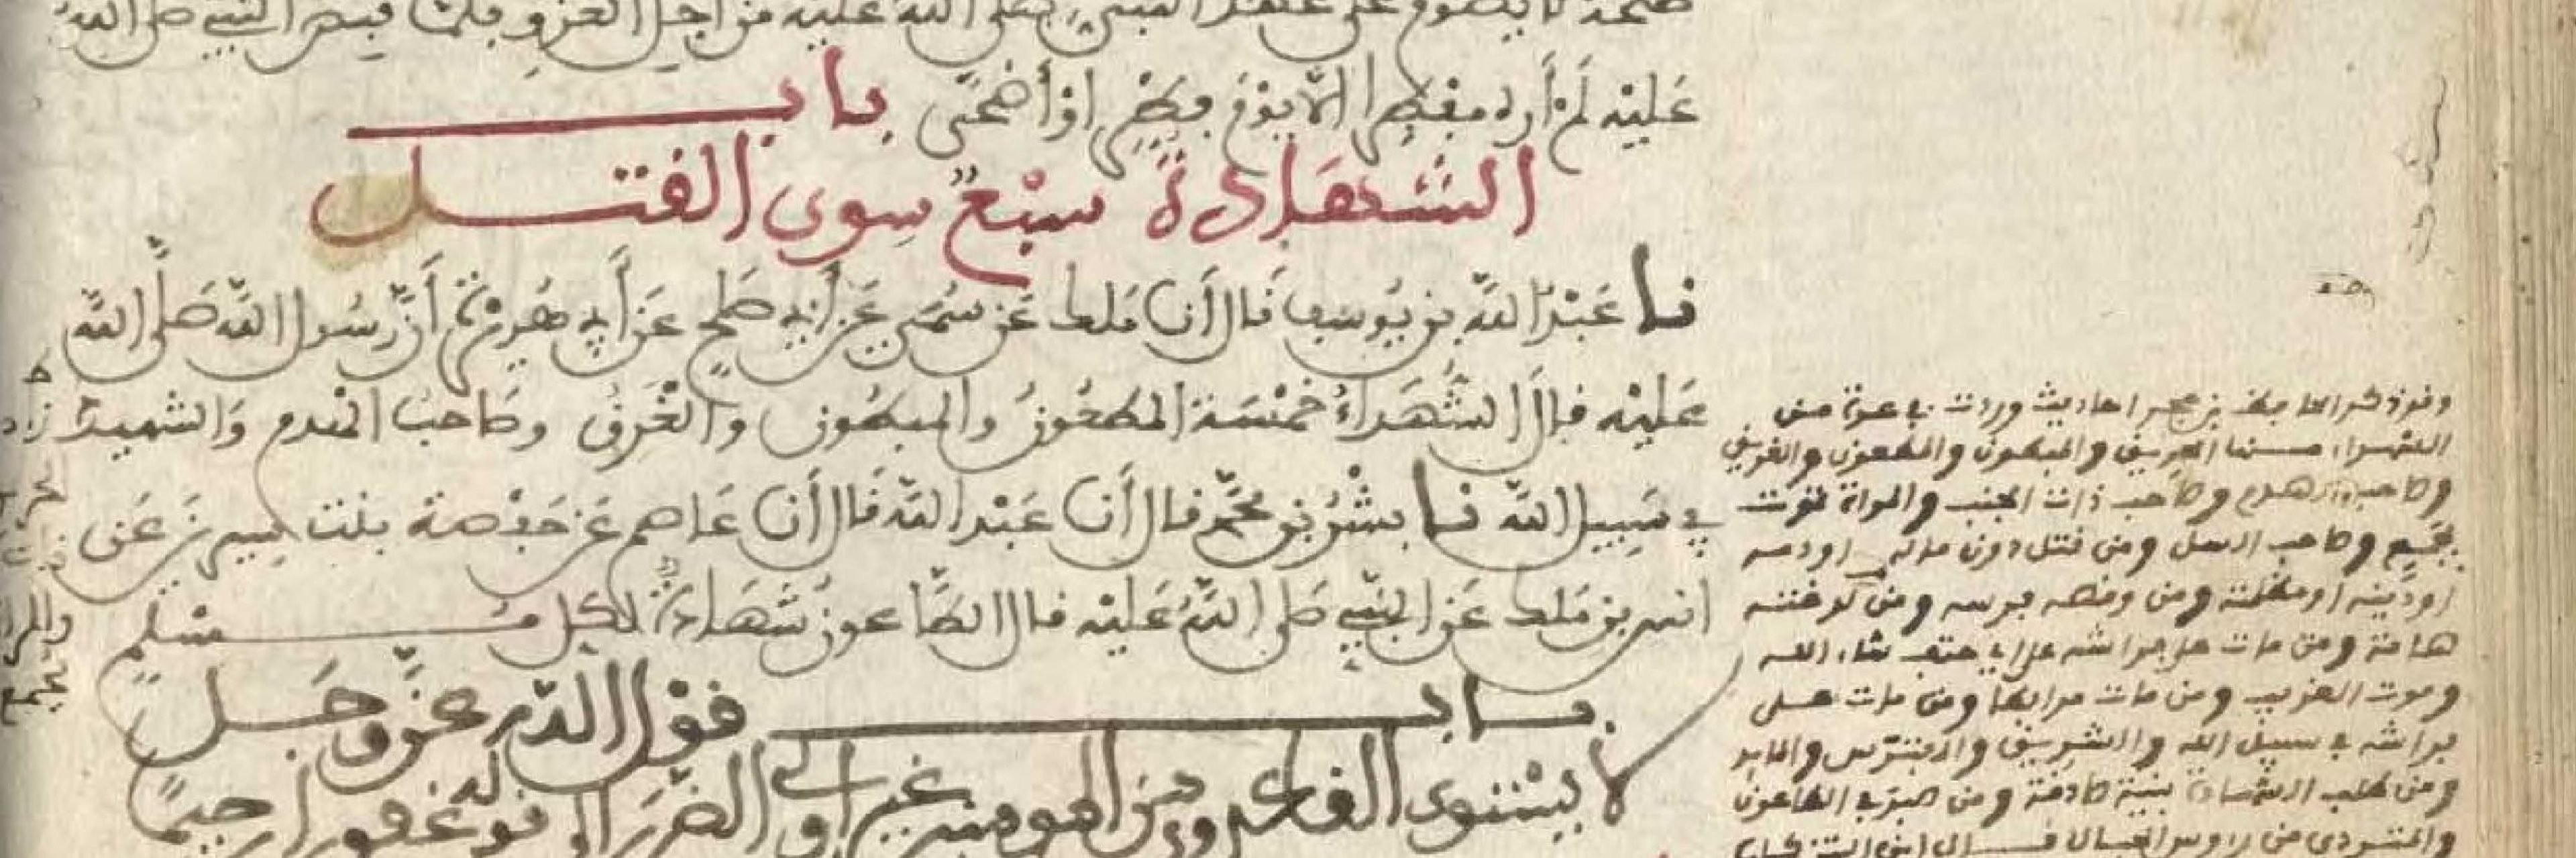 The Prophetic Promises for Martyrs and Medina: Is COVID-19 a Plague?